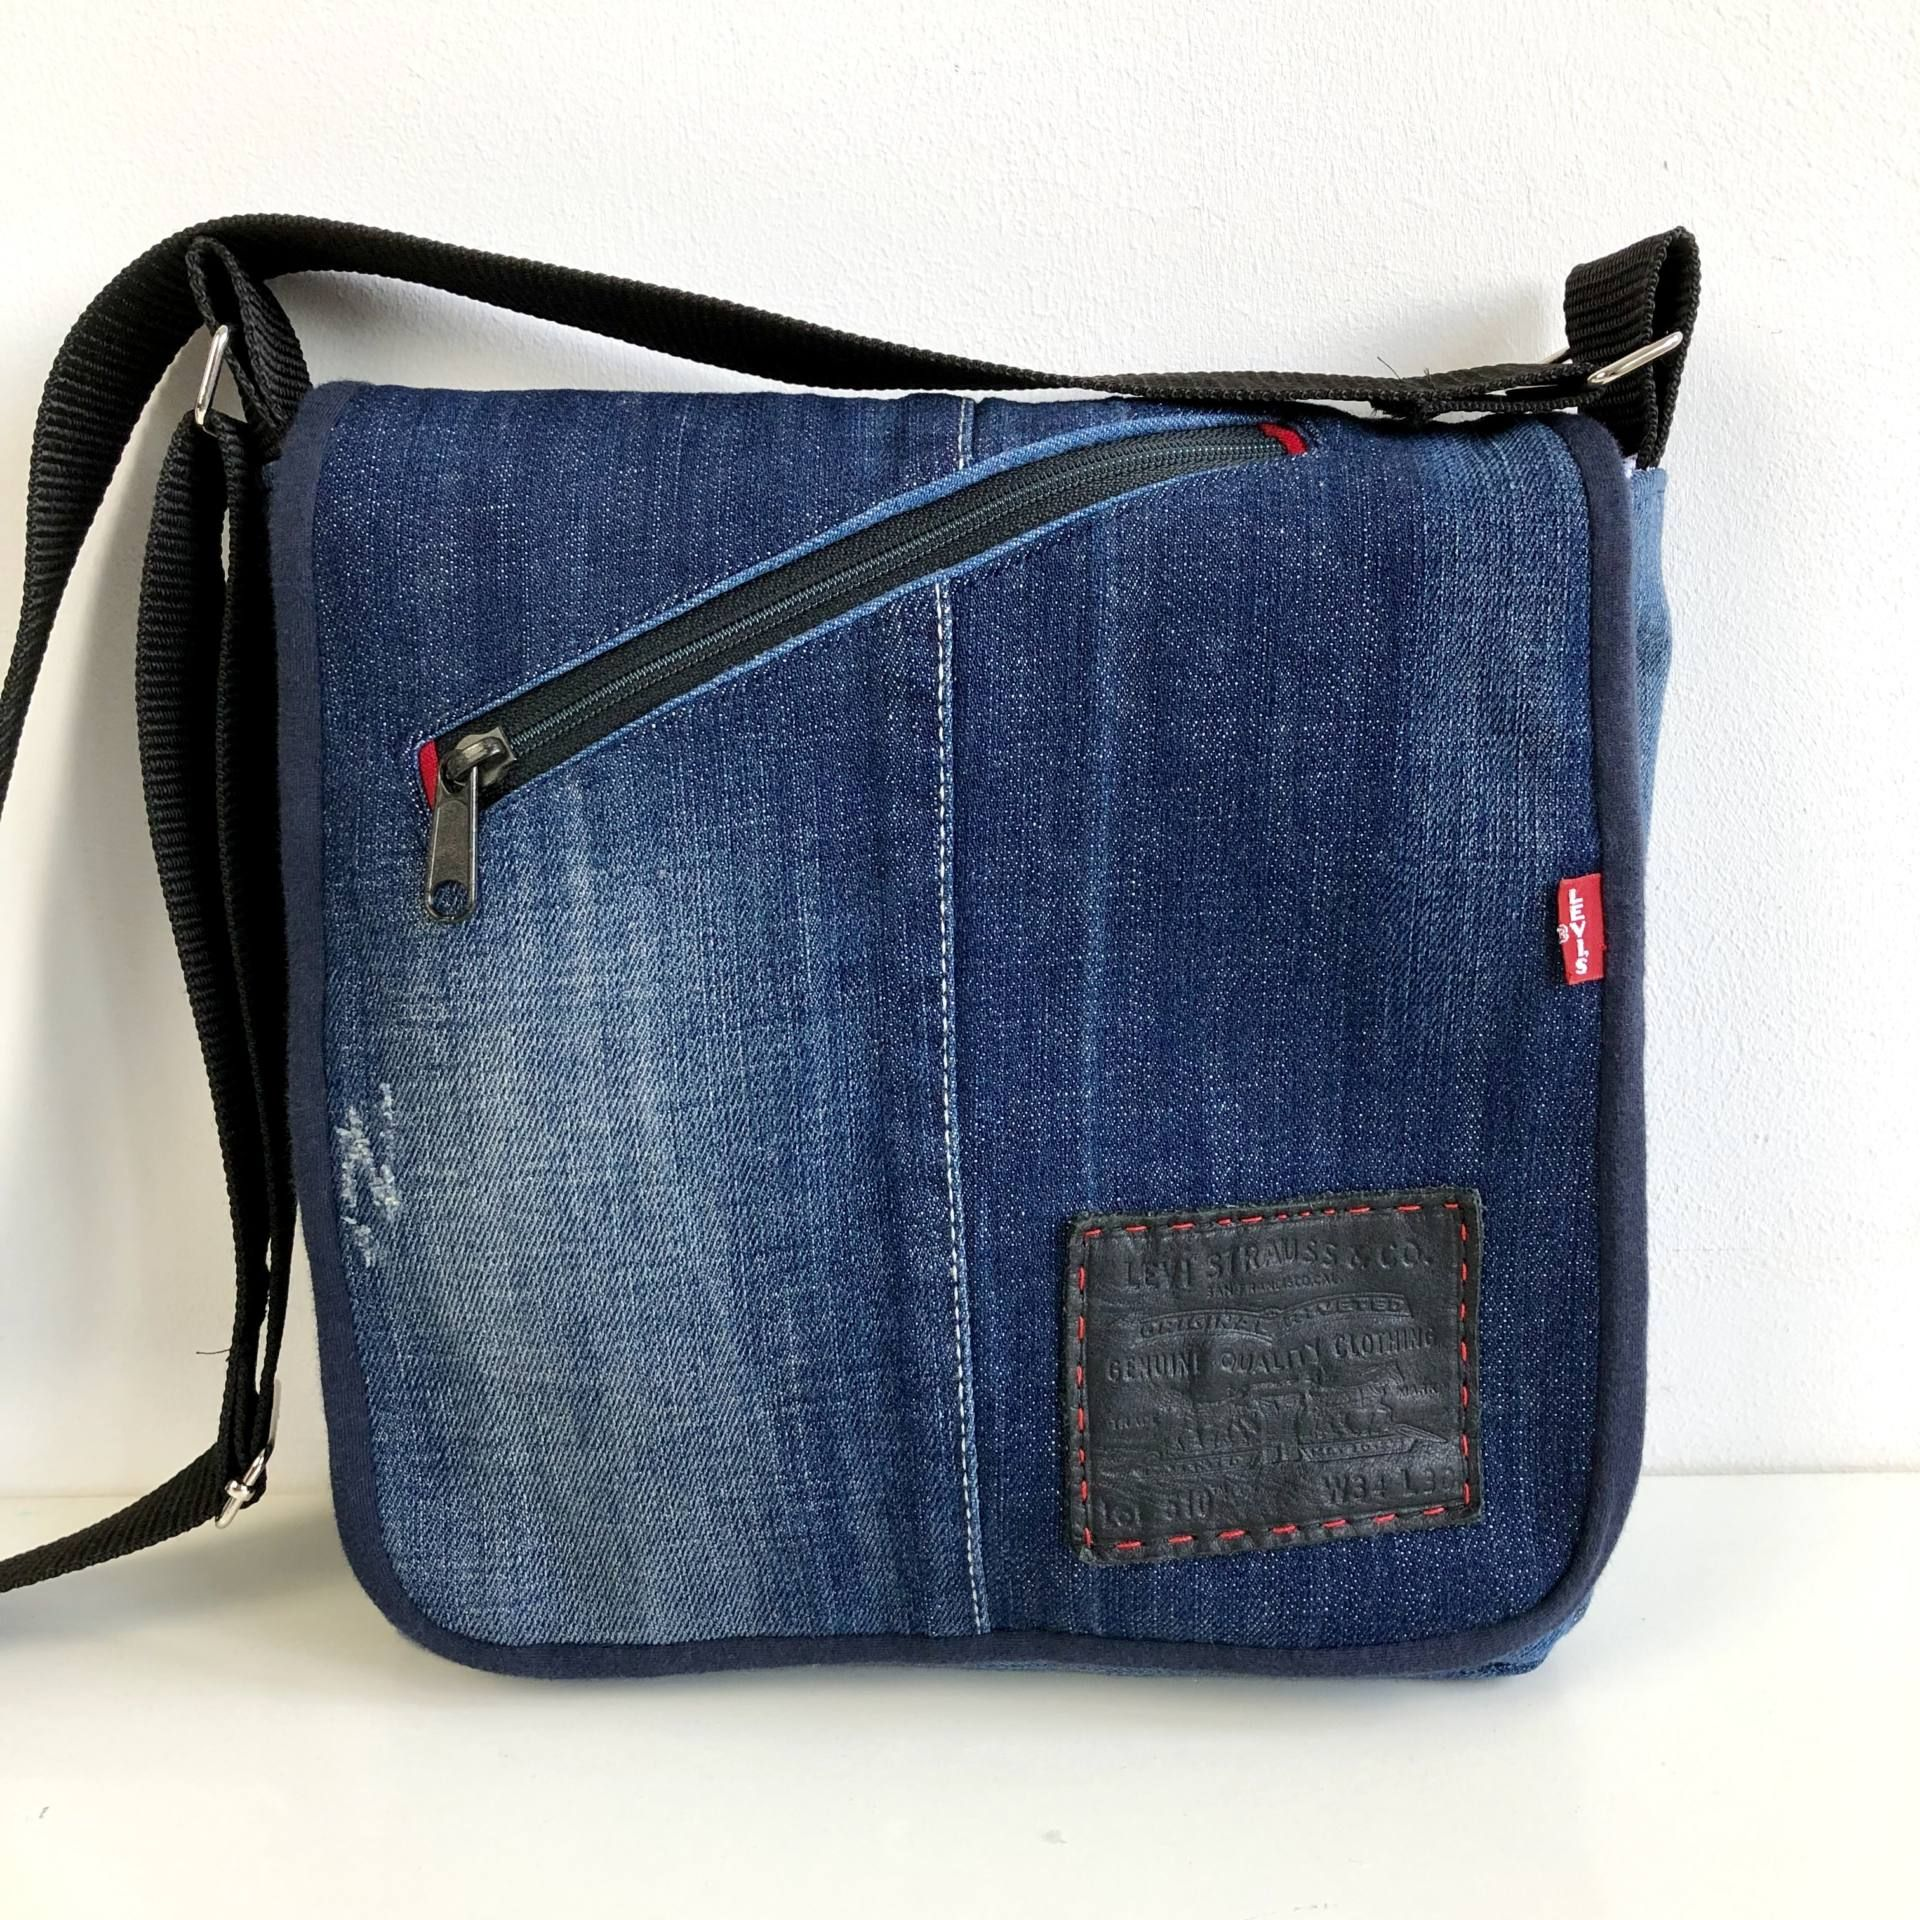 Sew a professional bag with this free messenger bag